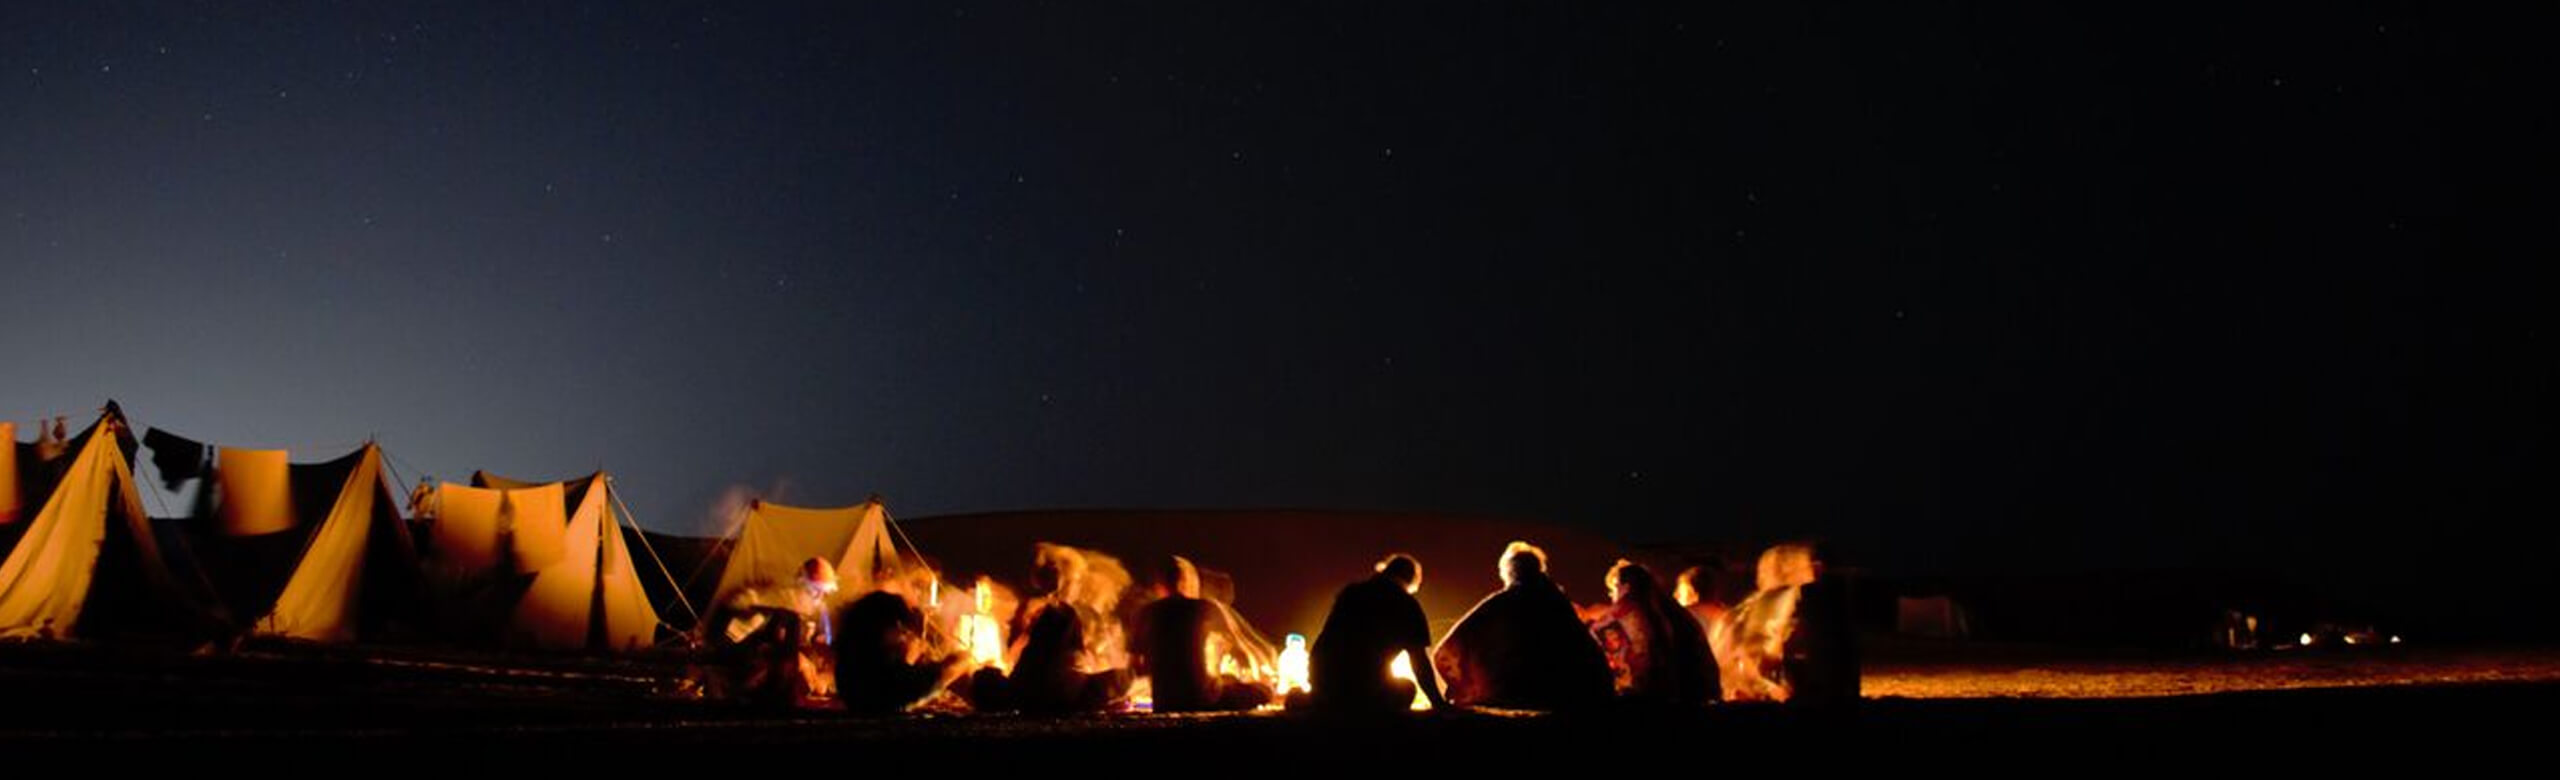 Campfire Ras Mohammed Camp